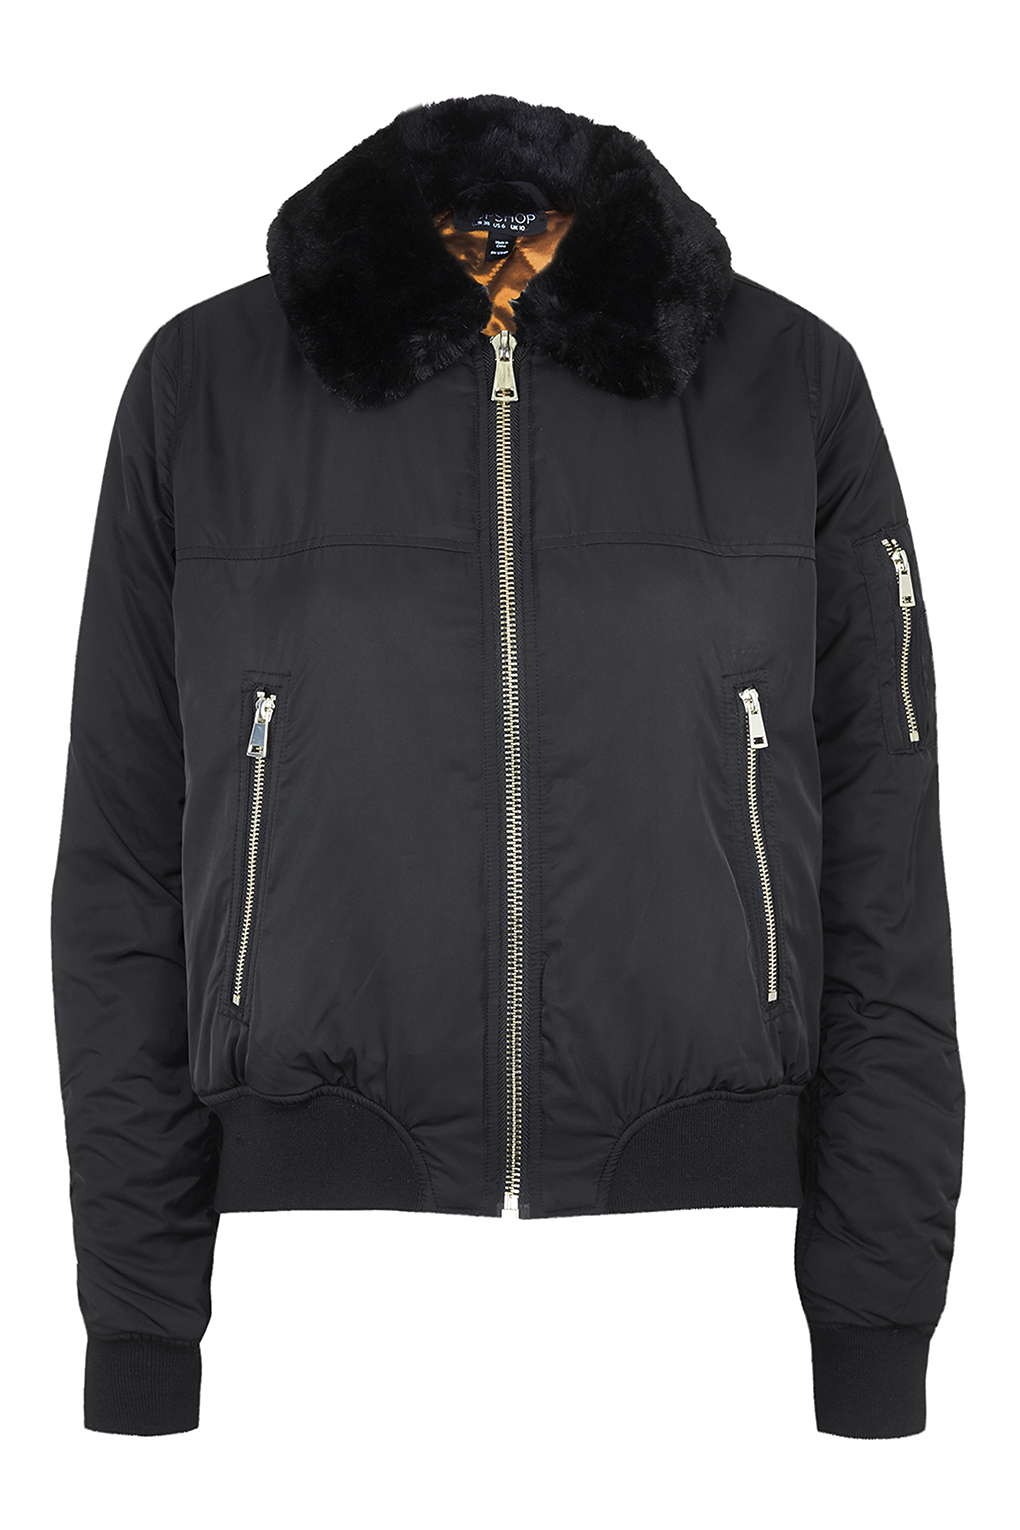 Topshop Tall Faux-fur Collar Ma1 Bomber Jacket in Black   Lyst